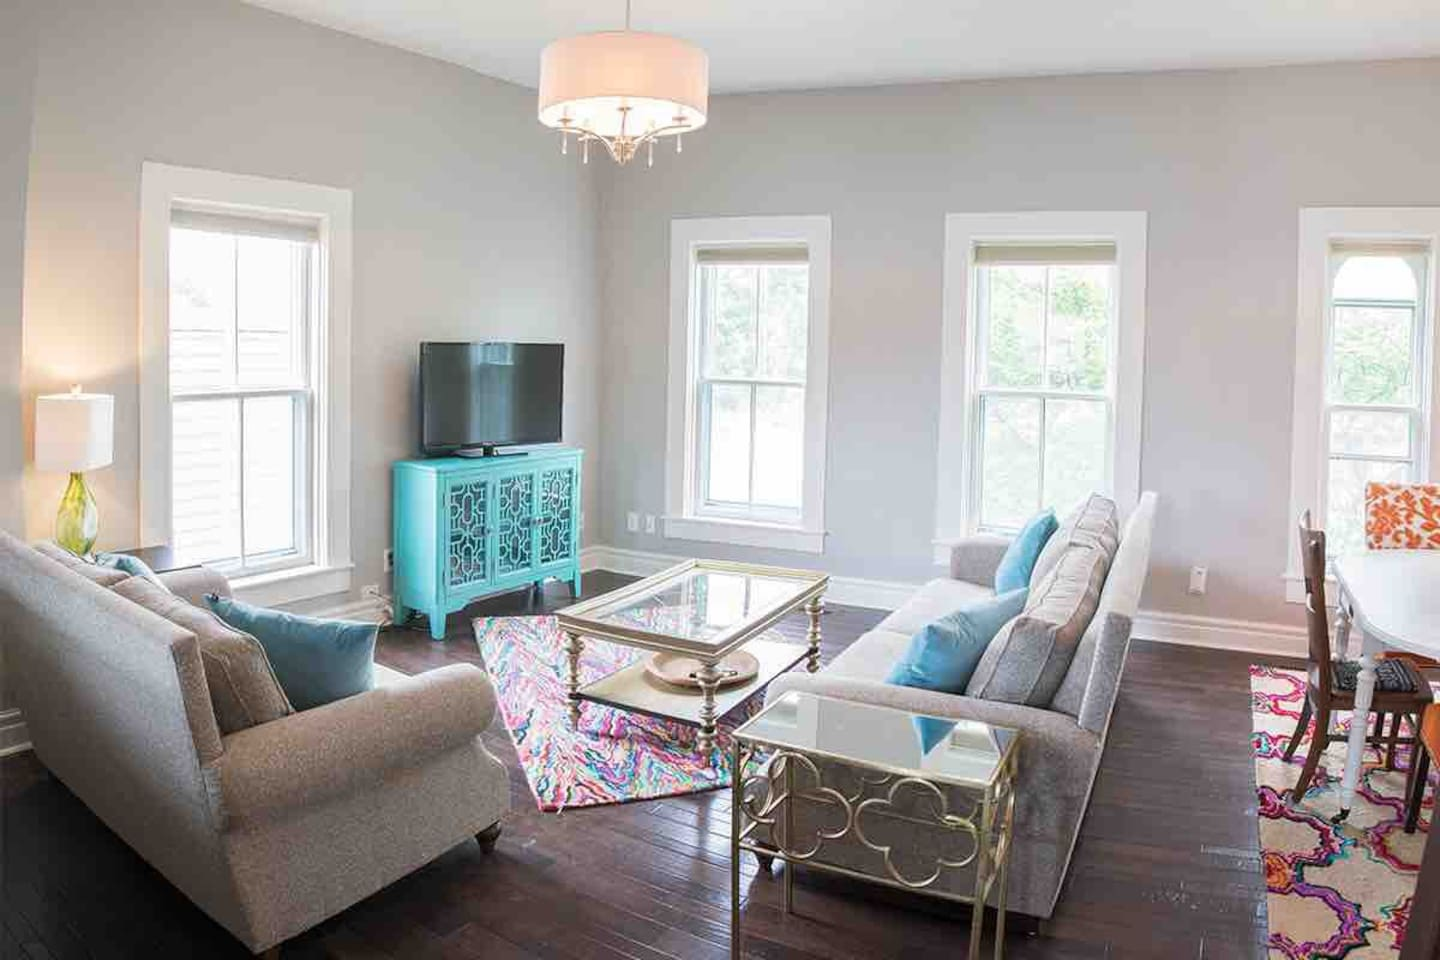 The (Bl)airbnb boasts 10 foot ceilings and a multitude of windows. Ample natural light. Walnut flooring throughout the entire apartment. Living Area & Kitchen feature Levelor cordless shades for privacy. Completely gutted and renovated in 2014.